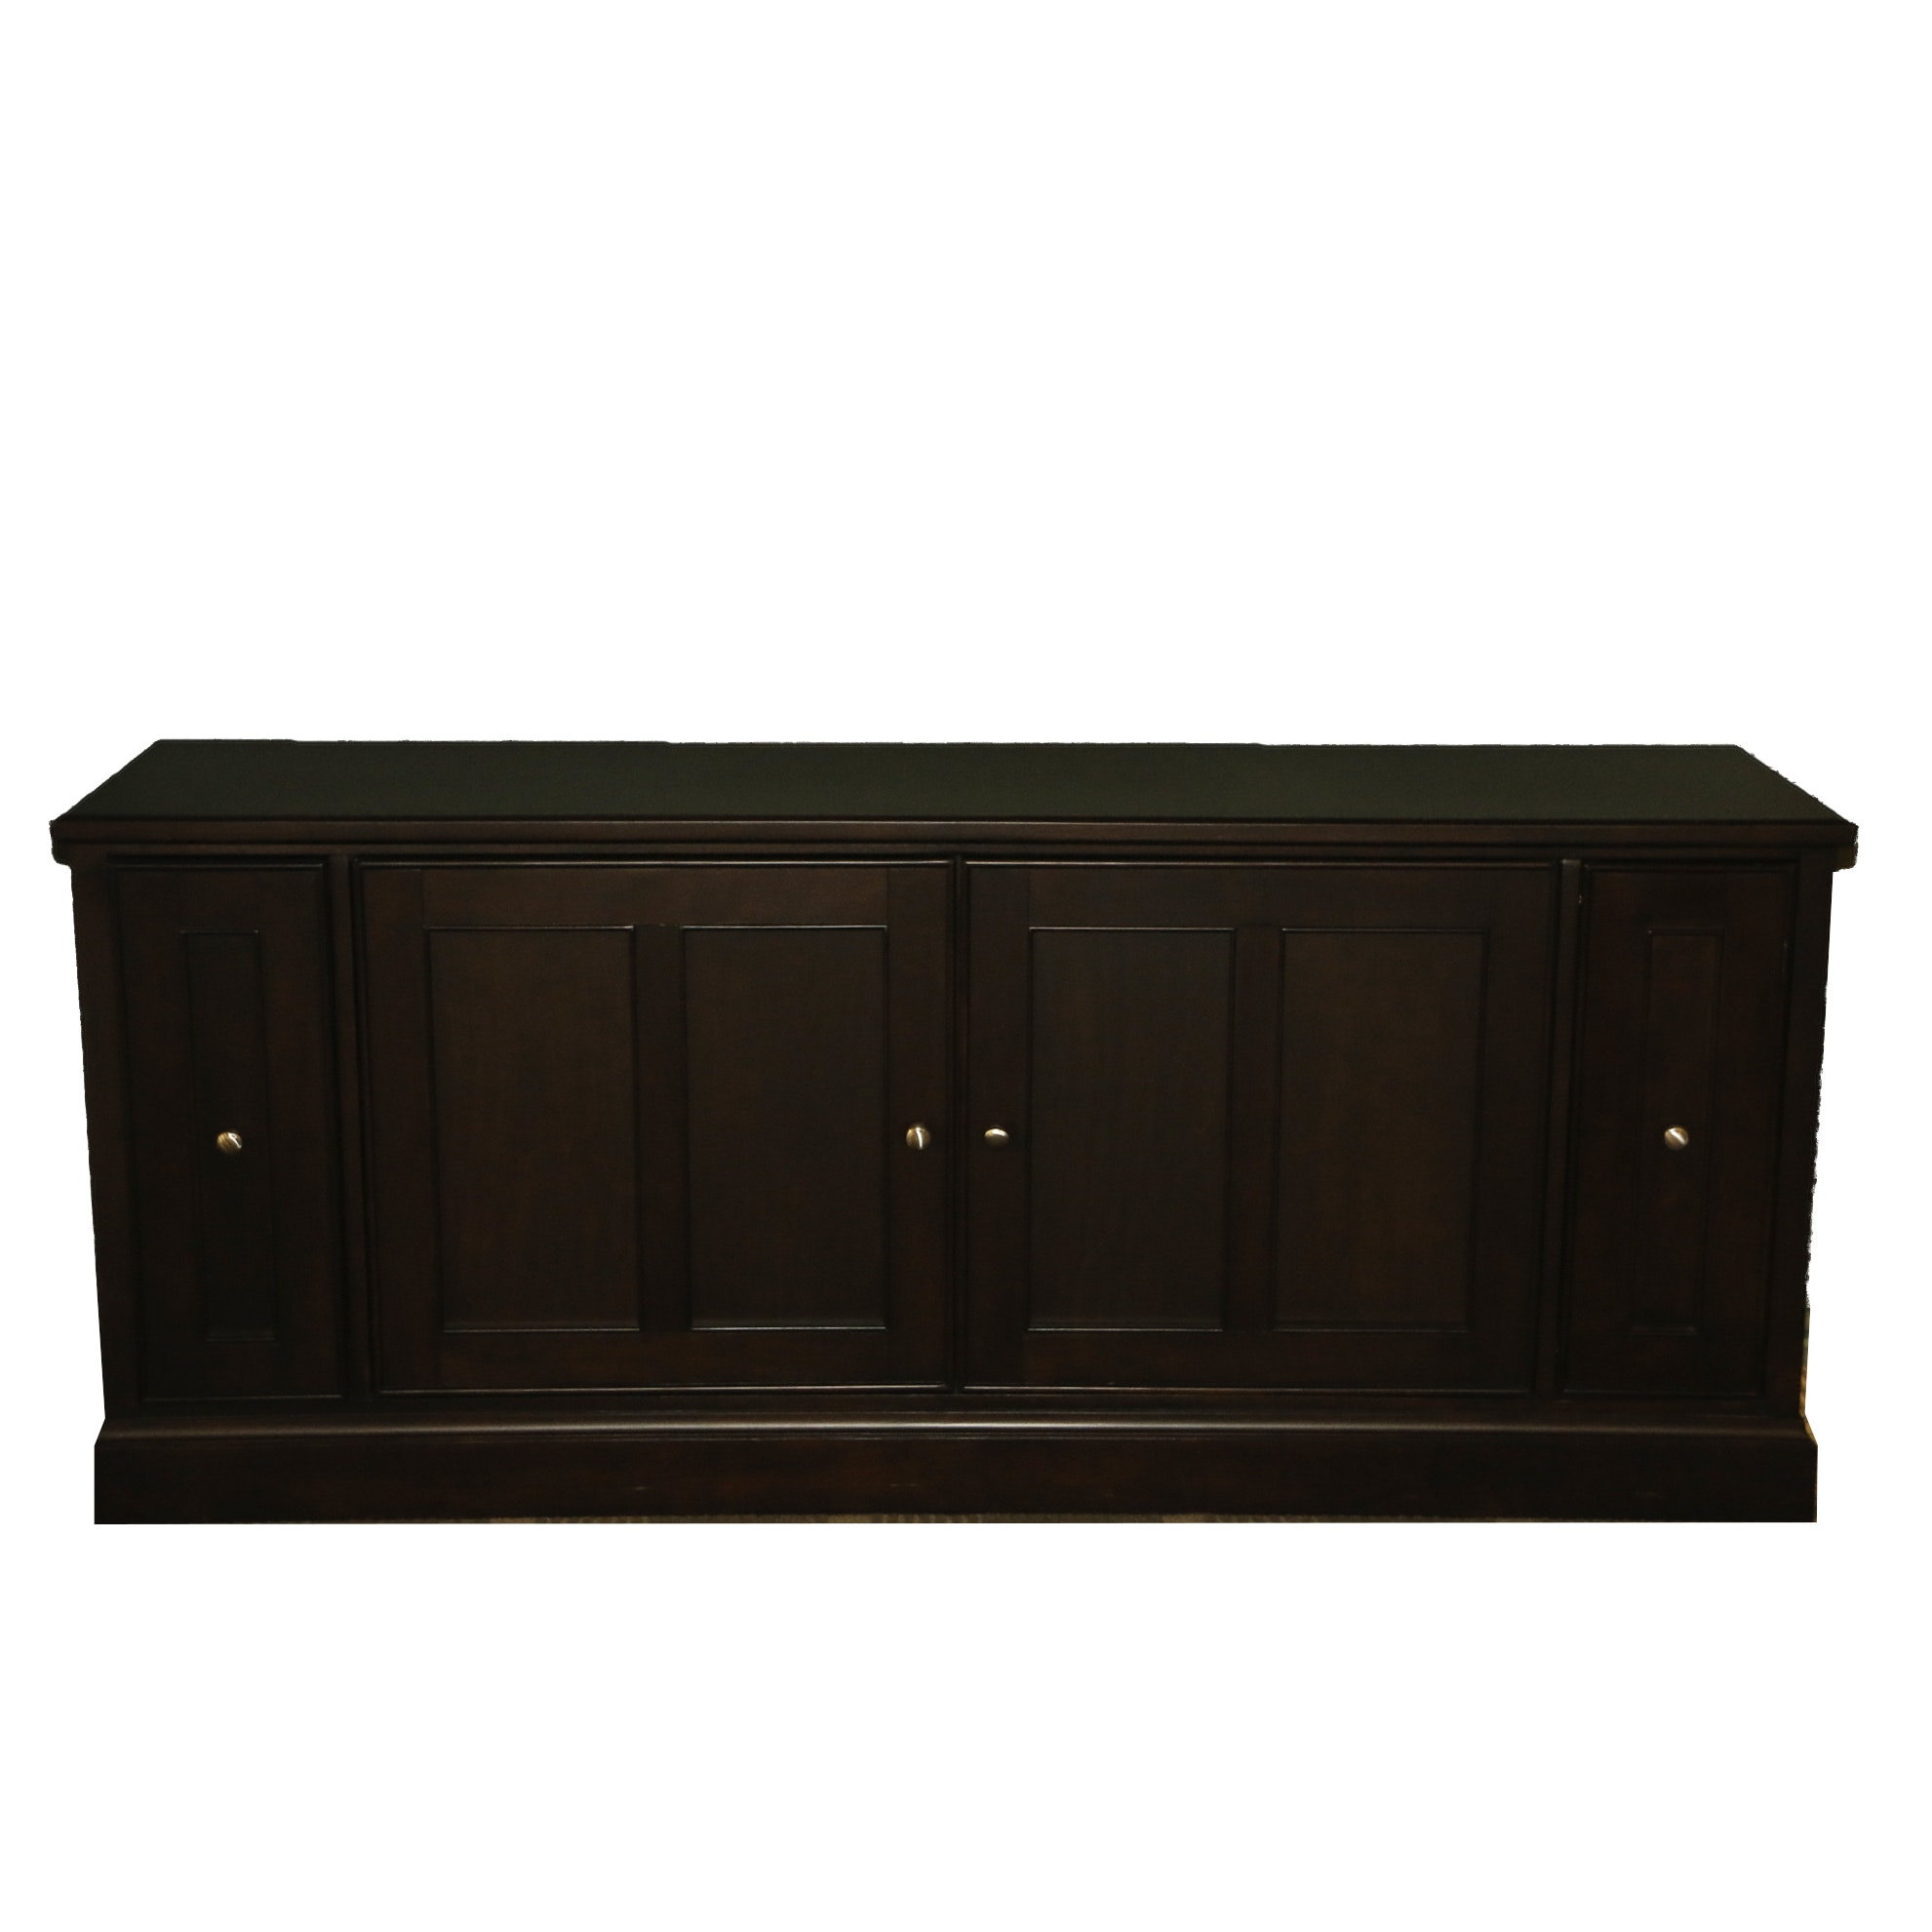 Contemporary Mahogany Stained Wood Sideboard